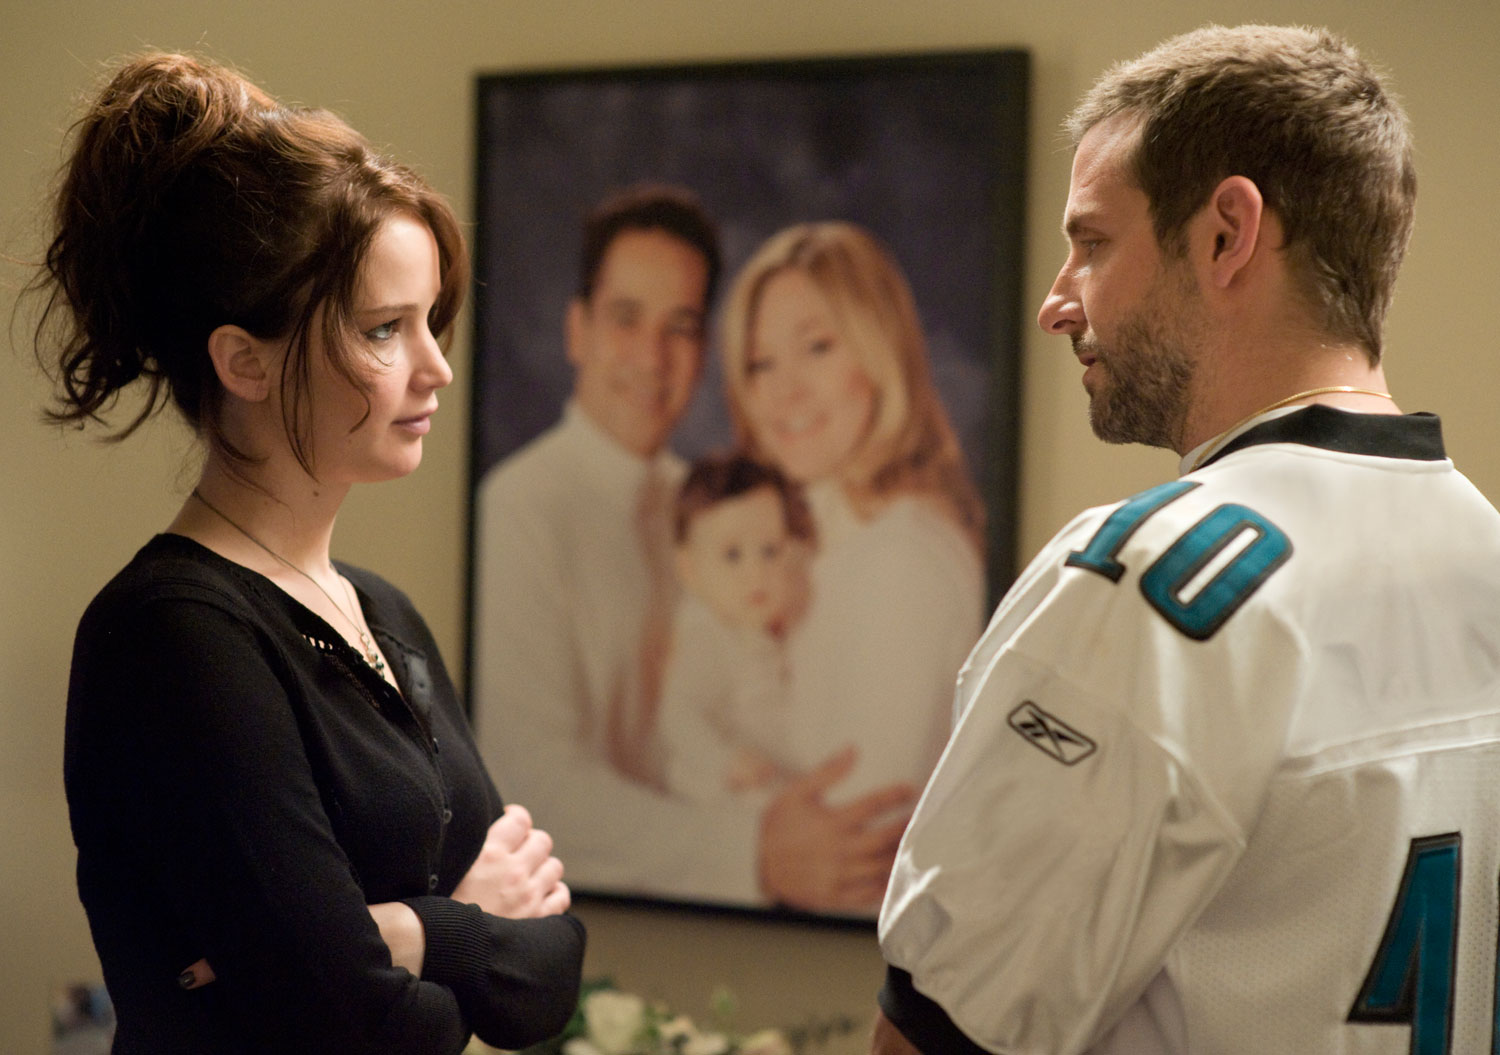 At the end of Silver Linings Playbook, Tiffany (Jennifer Lawrence) and Pat (Bradley Cooper) end up together with the open-ended possibility of a sequel. Maybe Pat's ex-wife Nikki returns and stirs up havoc for the happy couple? Or maybe Pat's dad returns to gambling and loses his newly acquired restaurant? Whatever the plot, who doesn't […]